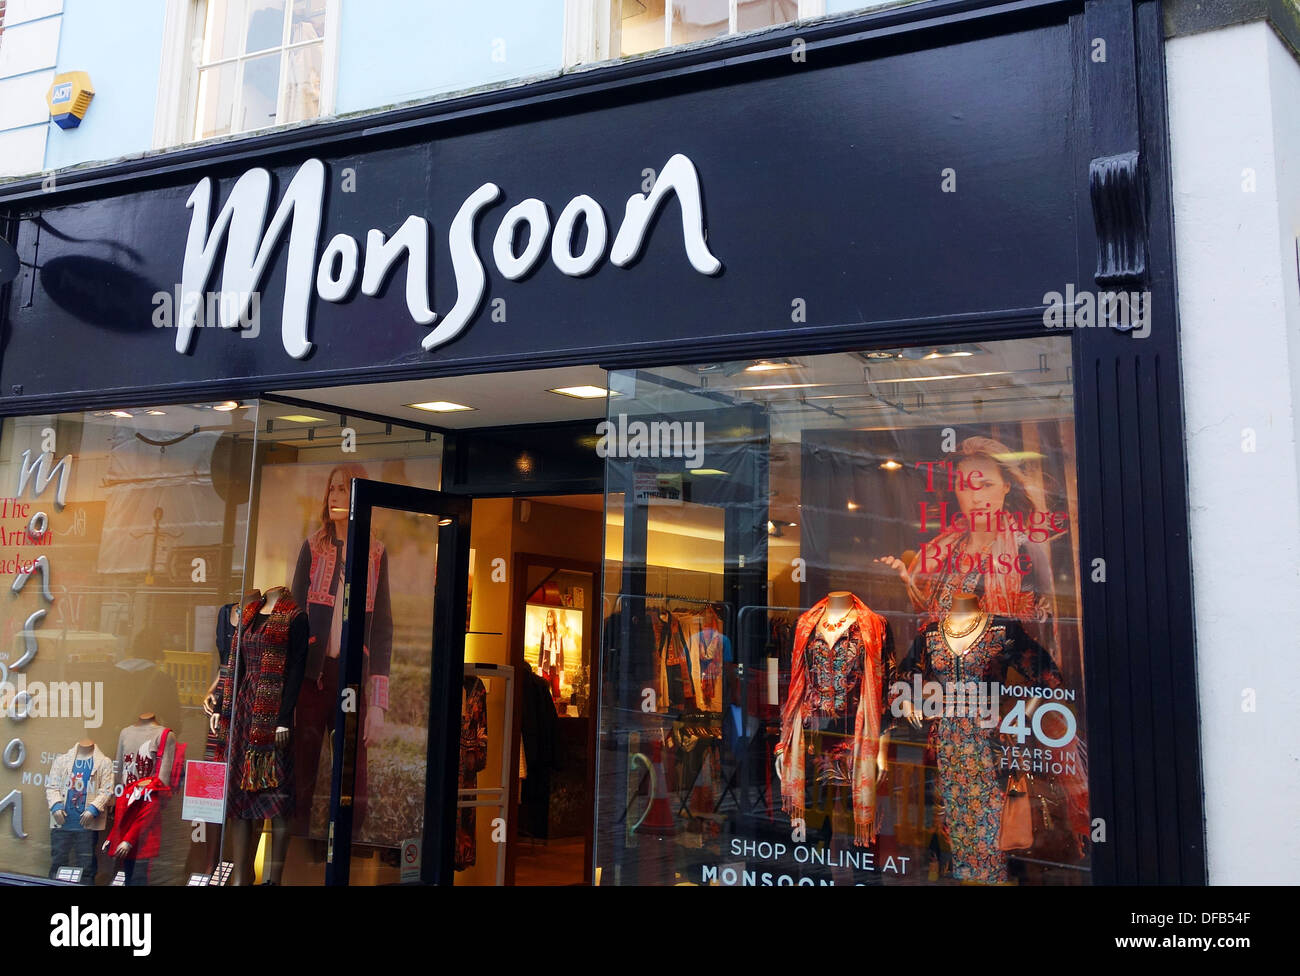 Monsoon fashion chain store, UK - Stock Image